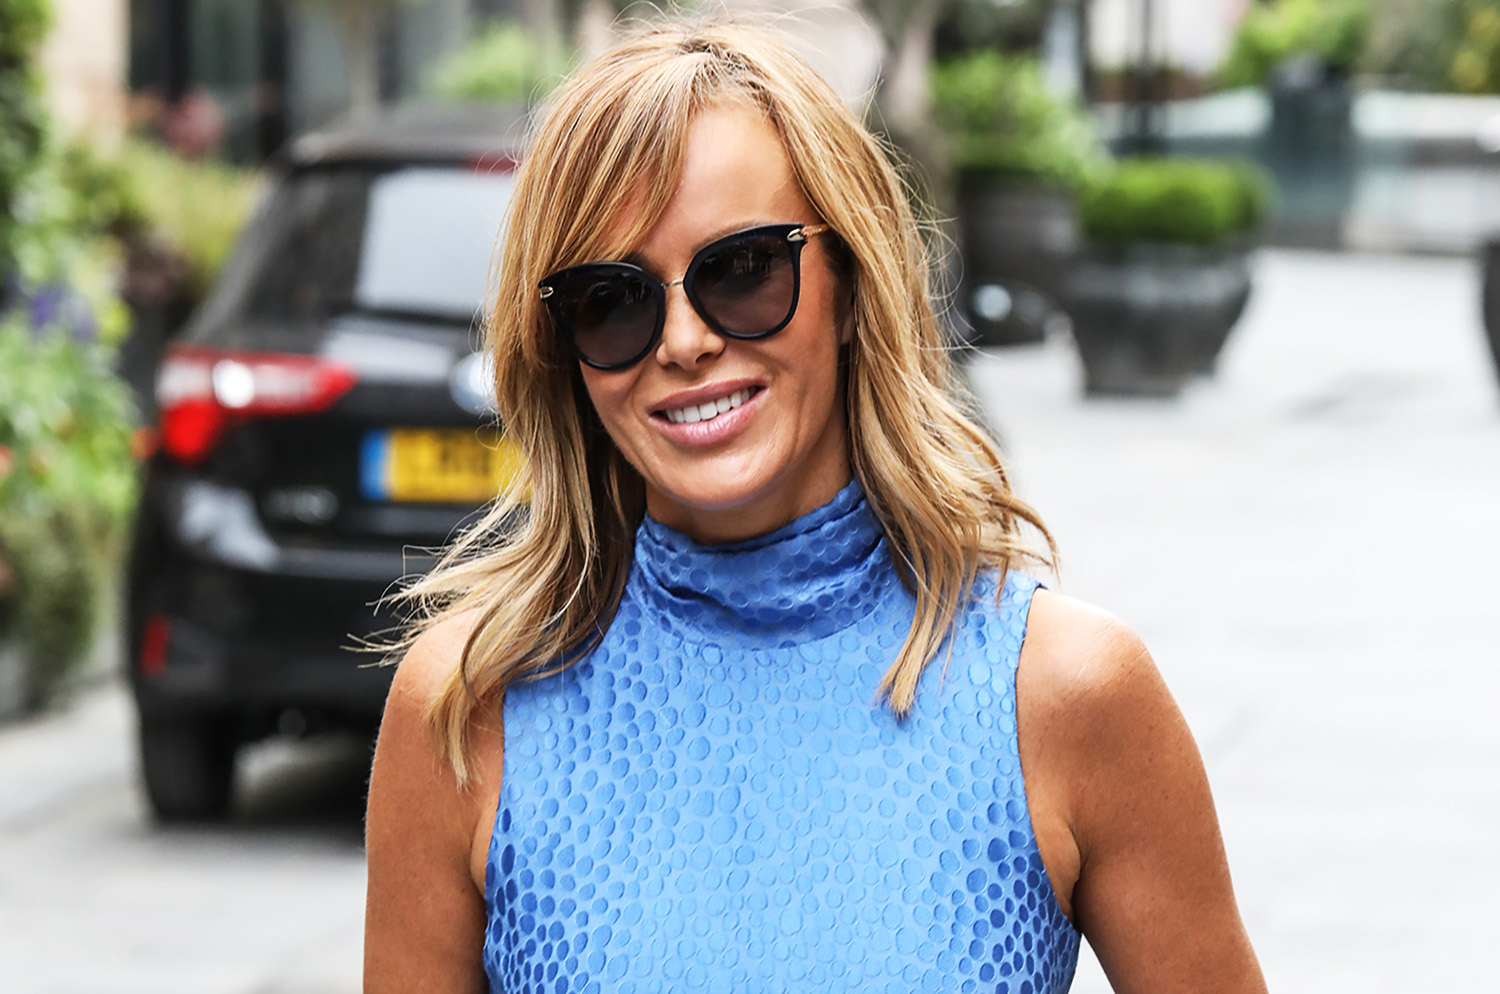 Amanda Holden showcases toned figure in skimpy red bikini